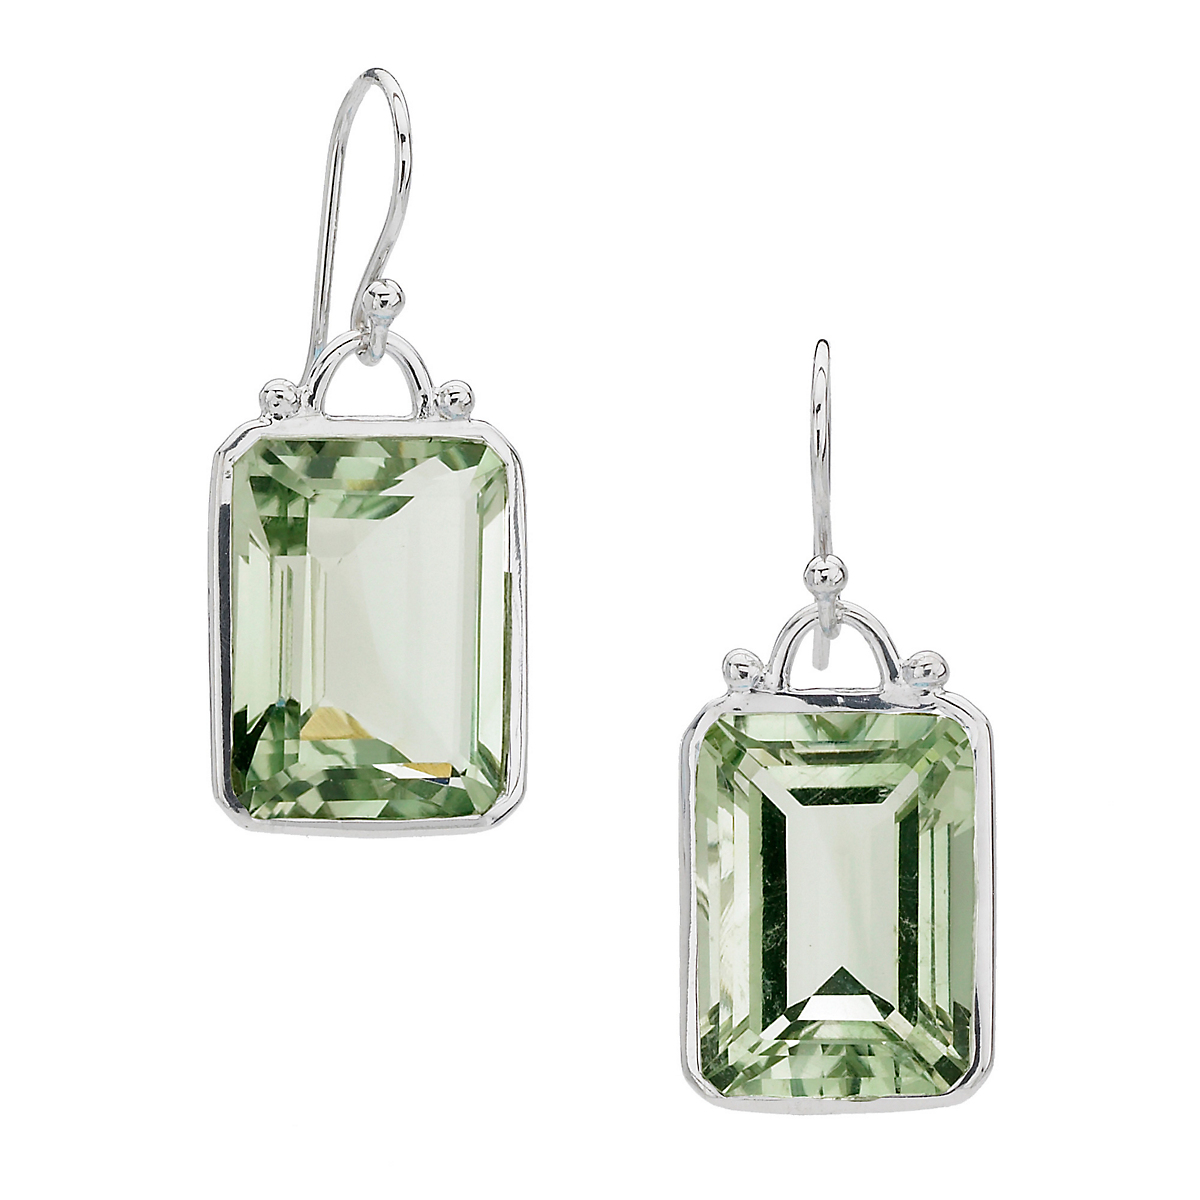 Elizabeth Showers Emerald Cut Green Amethyst Drop Earrings